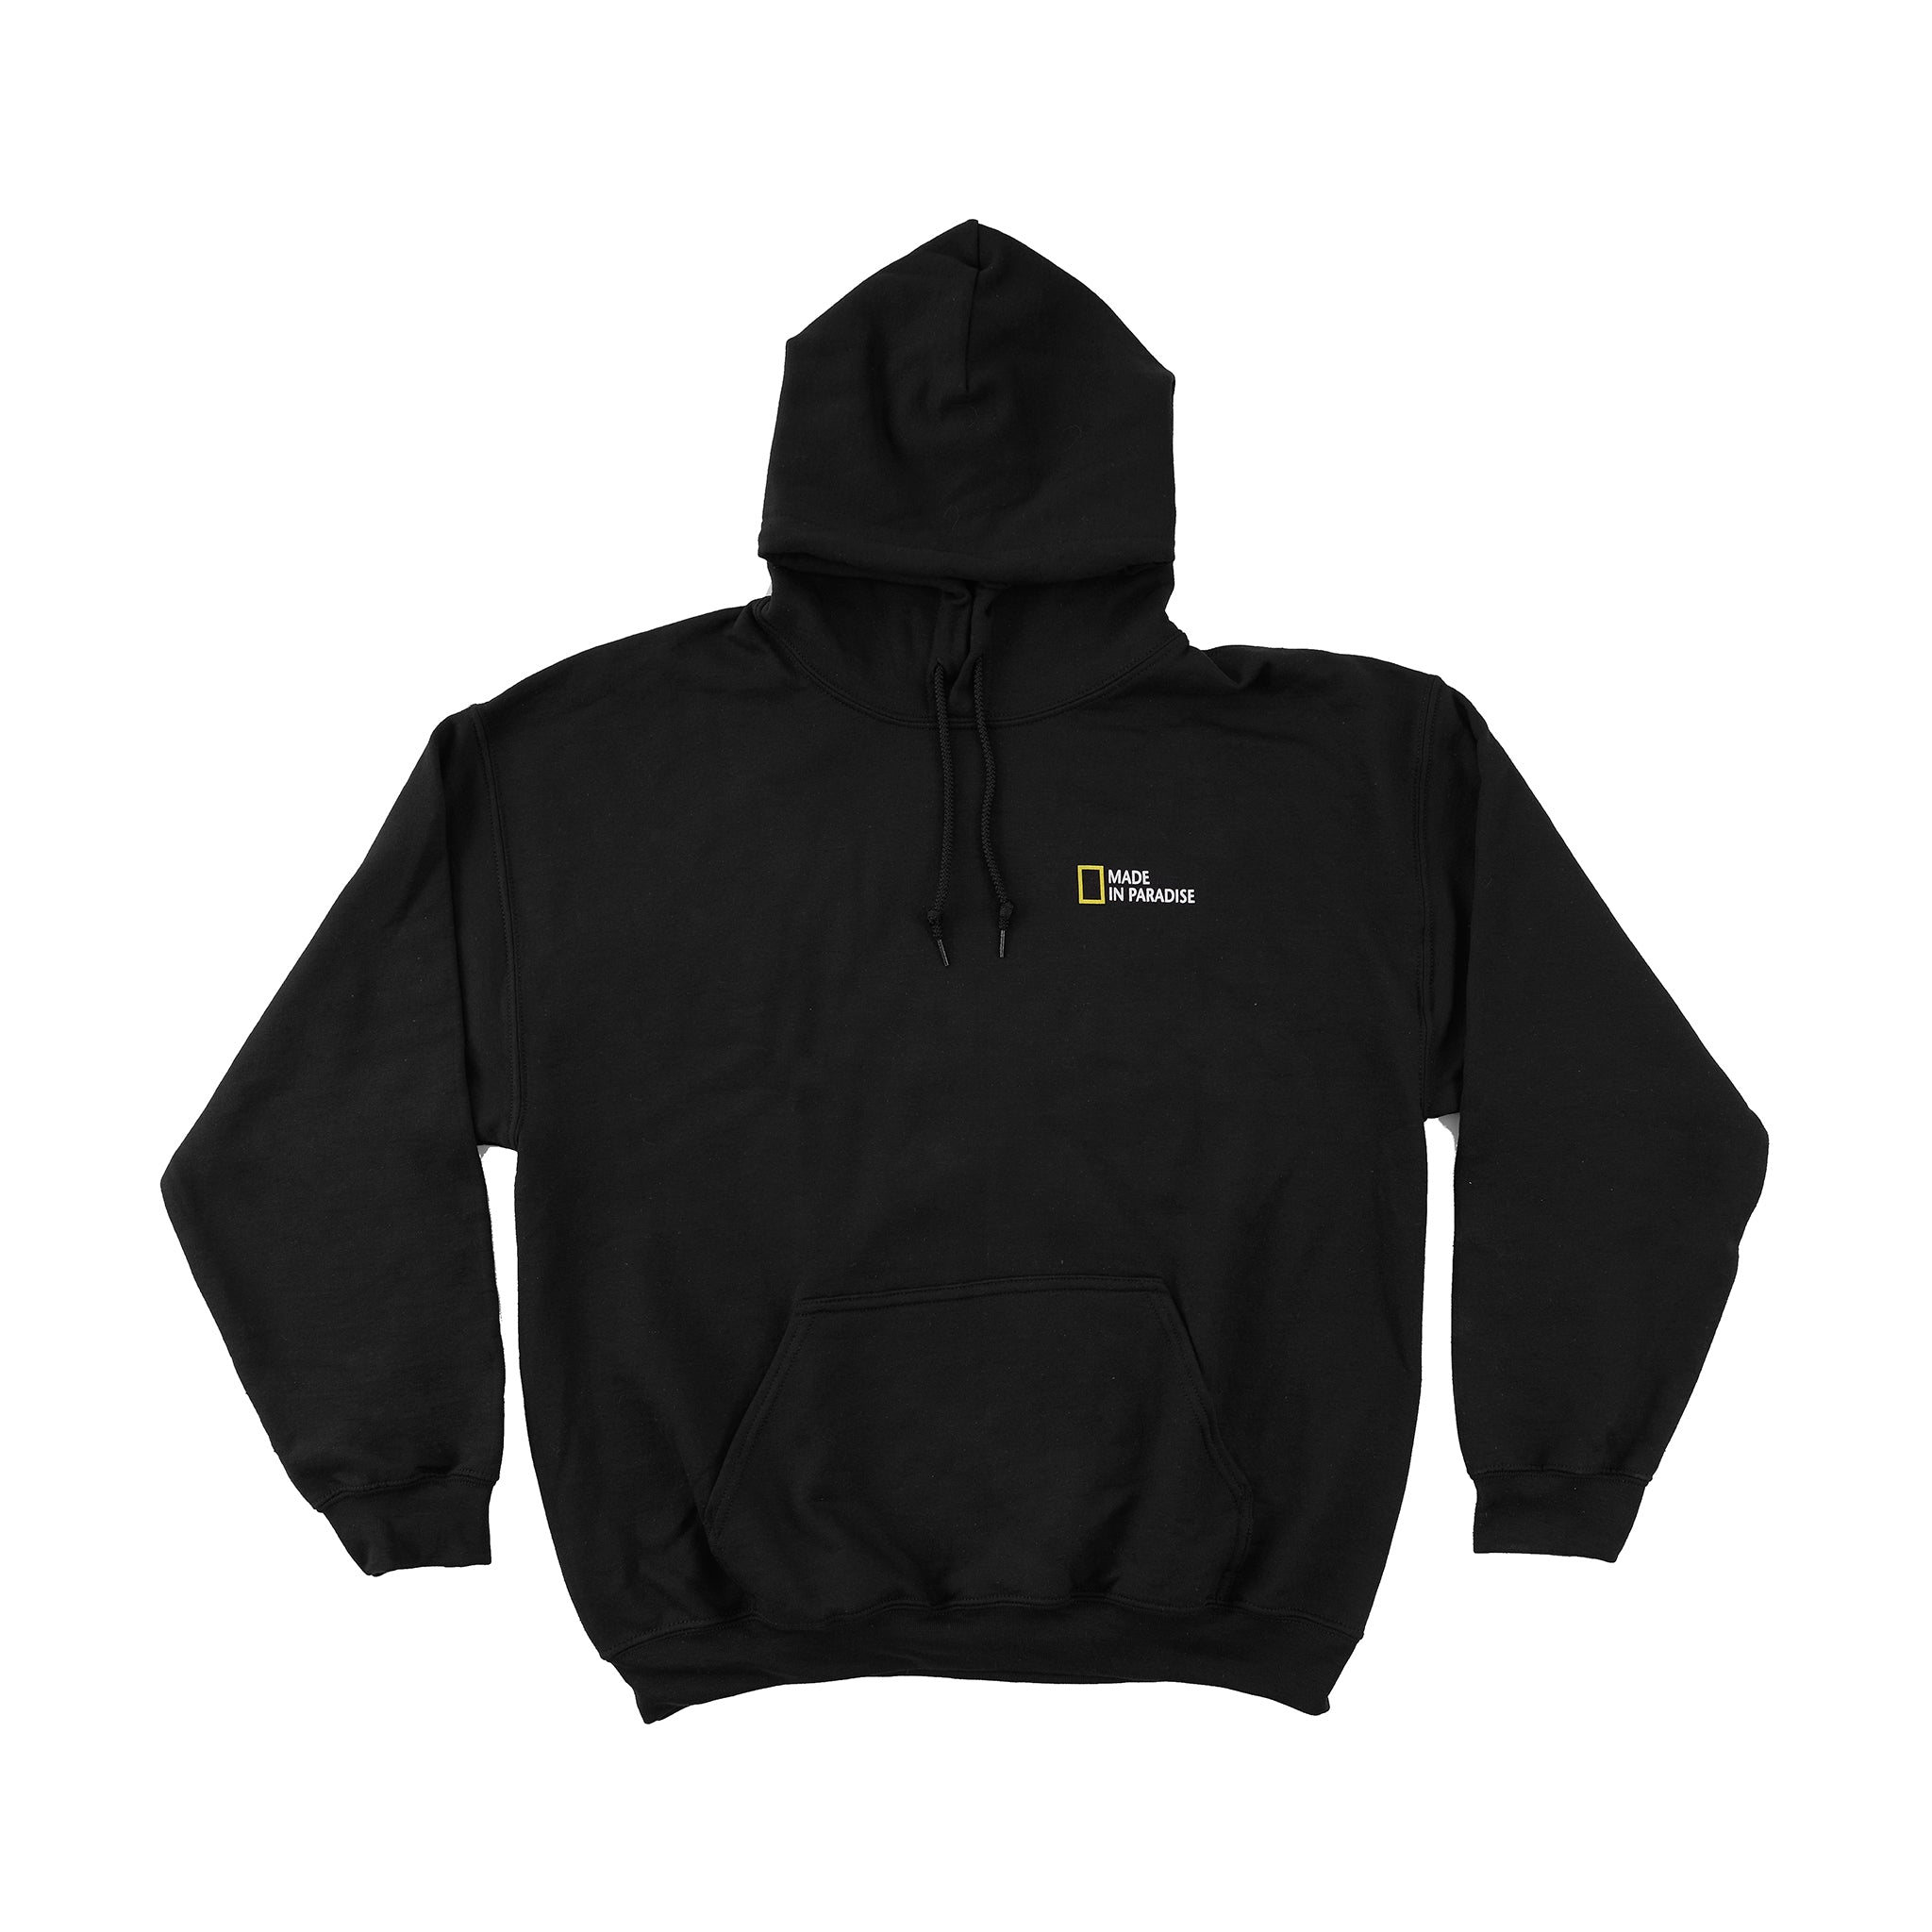 LION STYLE HOODIE